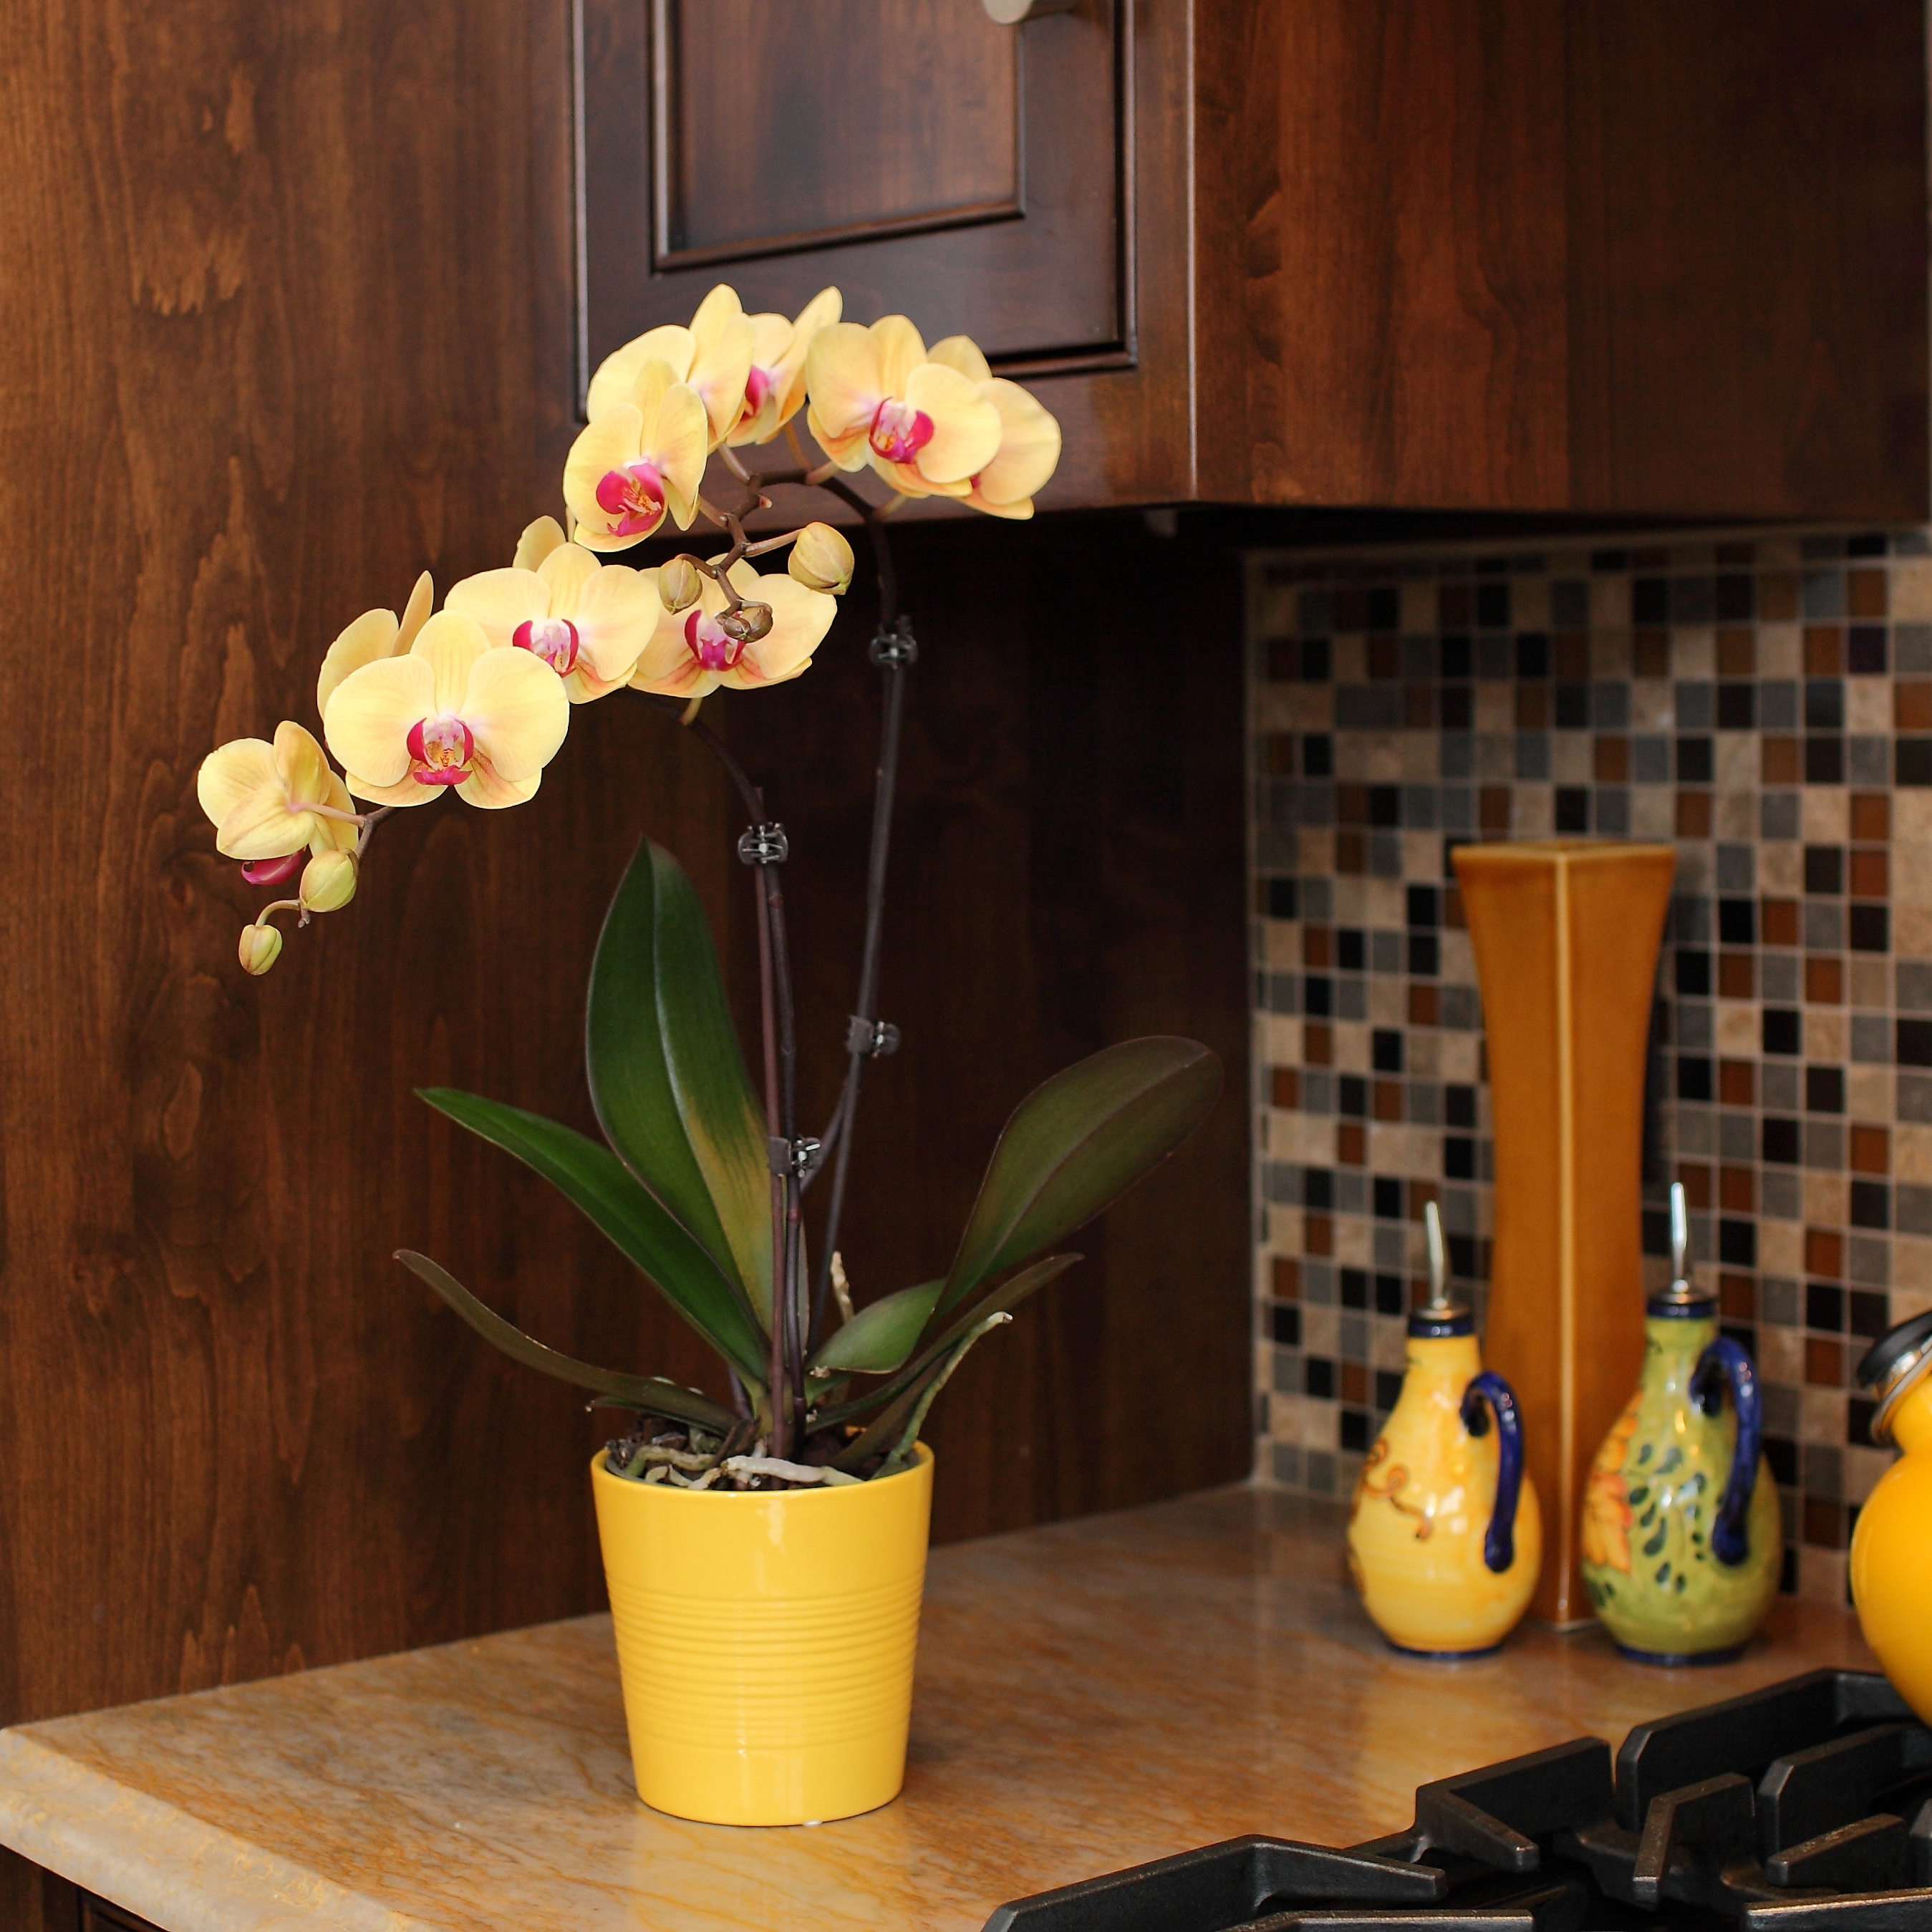 Selling Potted Indoor Plants vs. Fresh Flowers